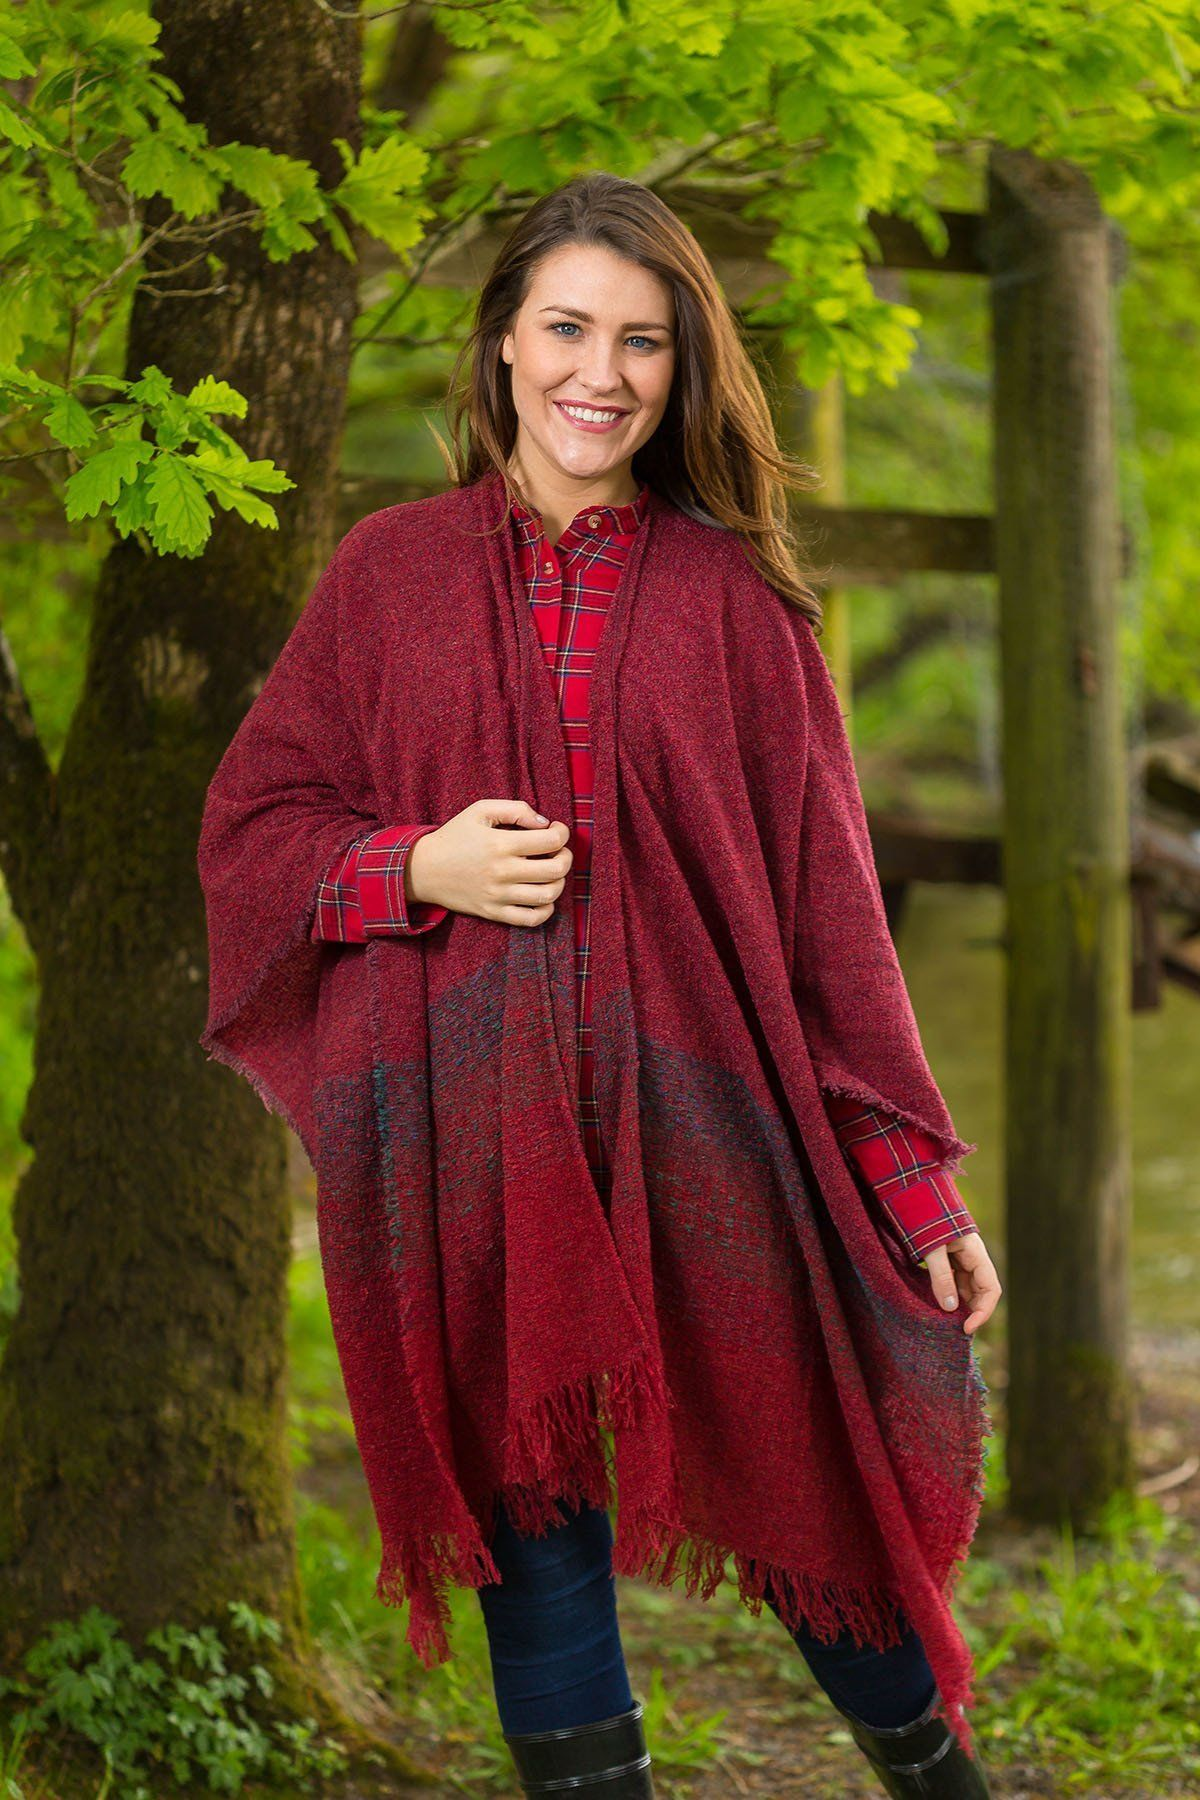 f2658936b7 Celtic Wool Shawl -Rich Red - Lee Valley Ireland - 1 ...